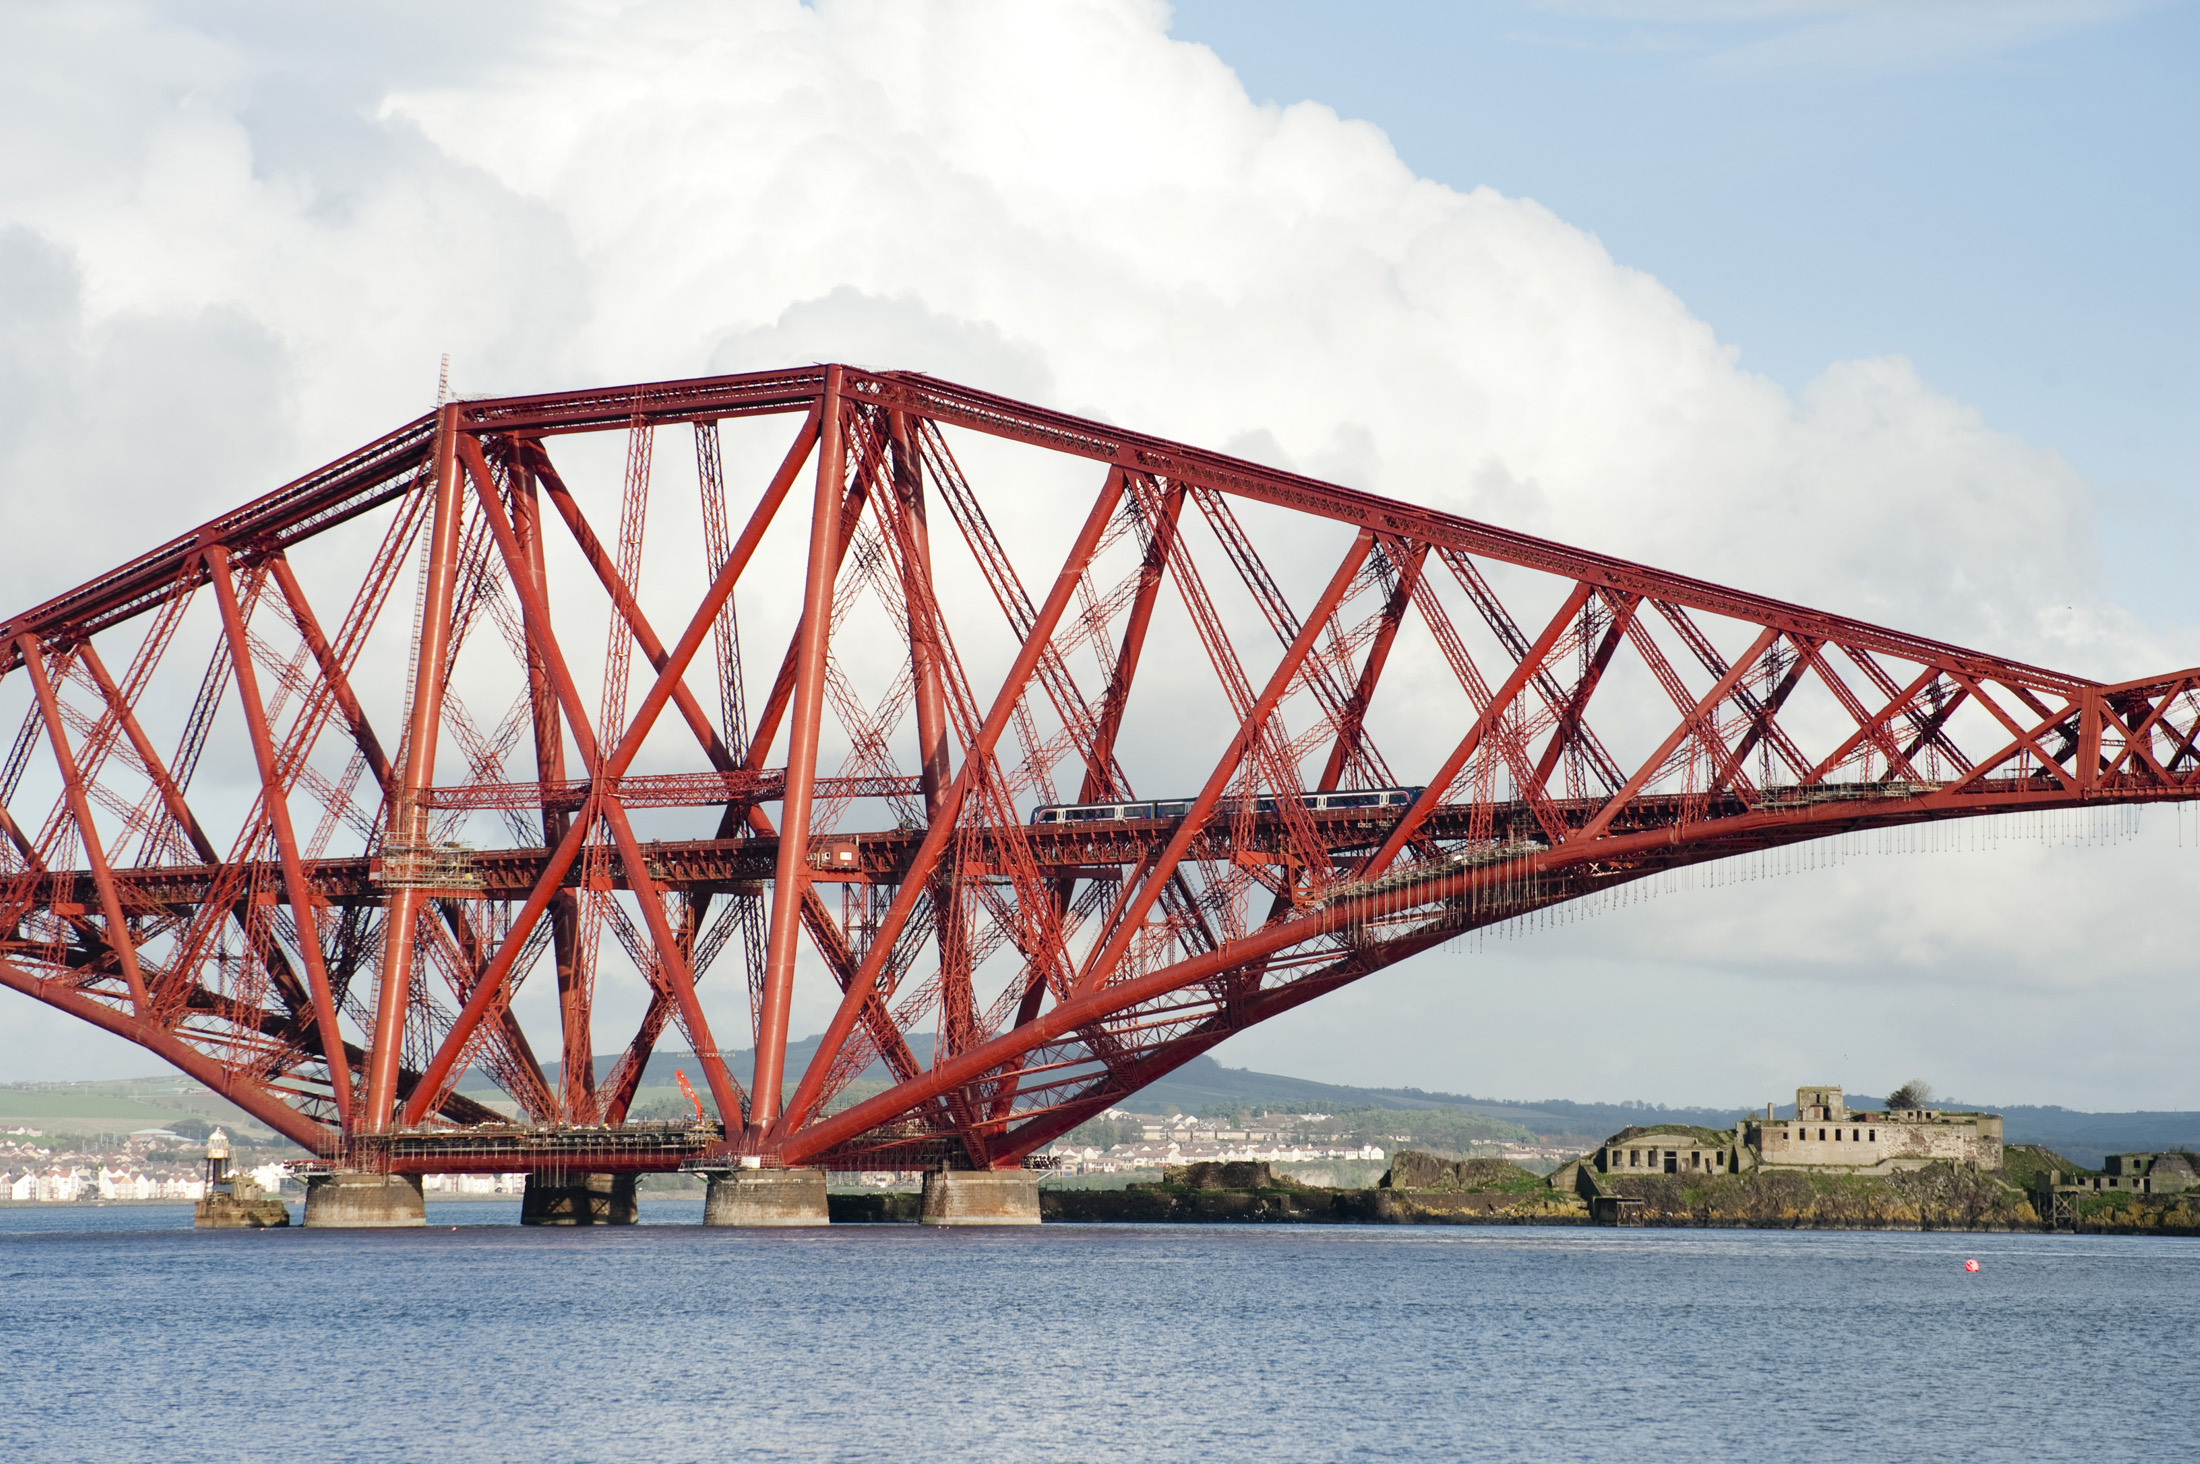 a train dwarfed by the giant structure of the forth bridge, firth of forth, scotland